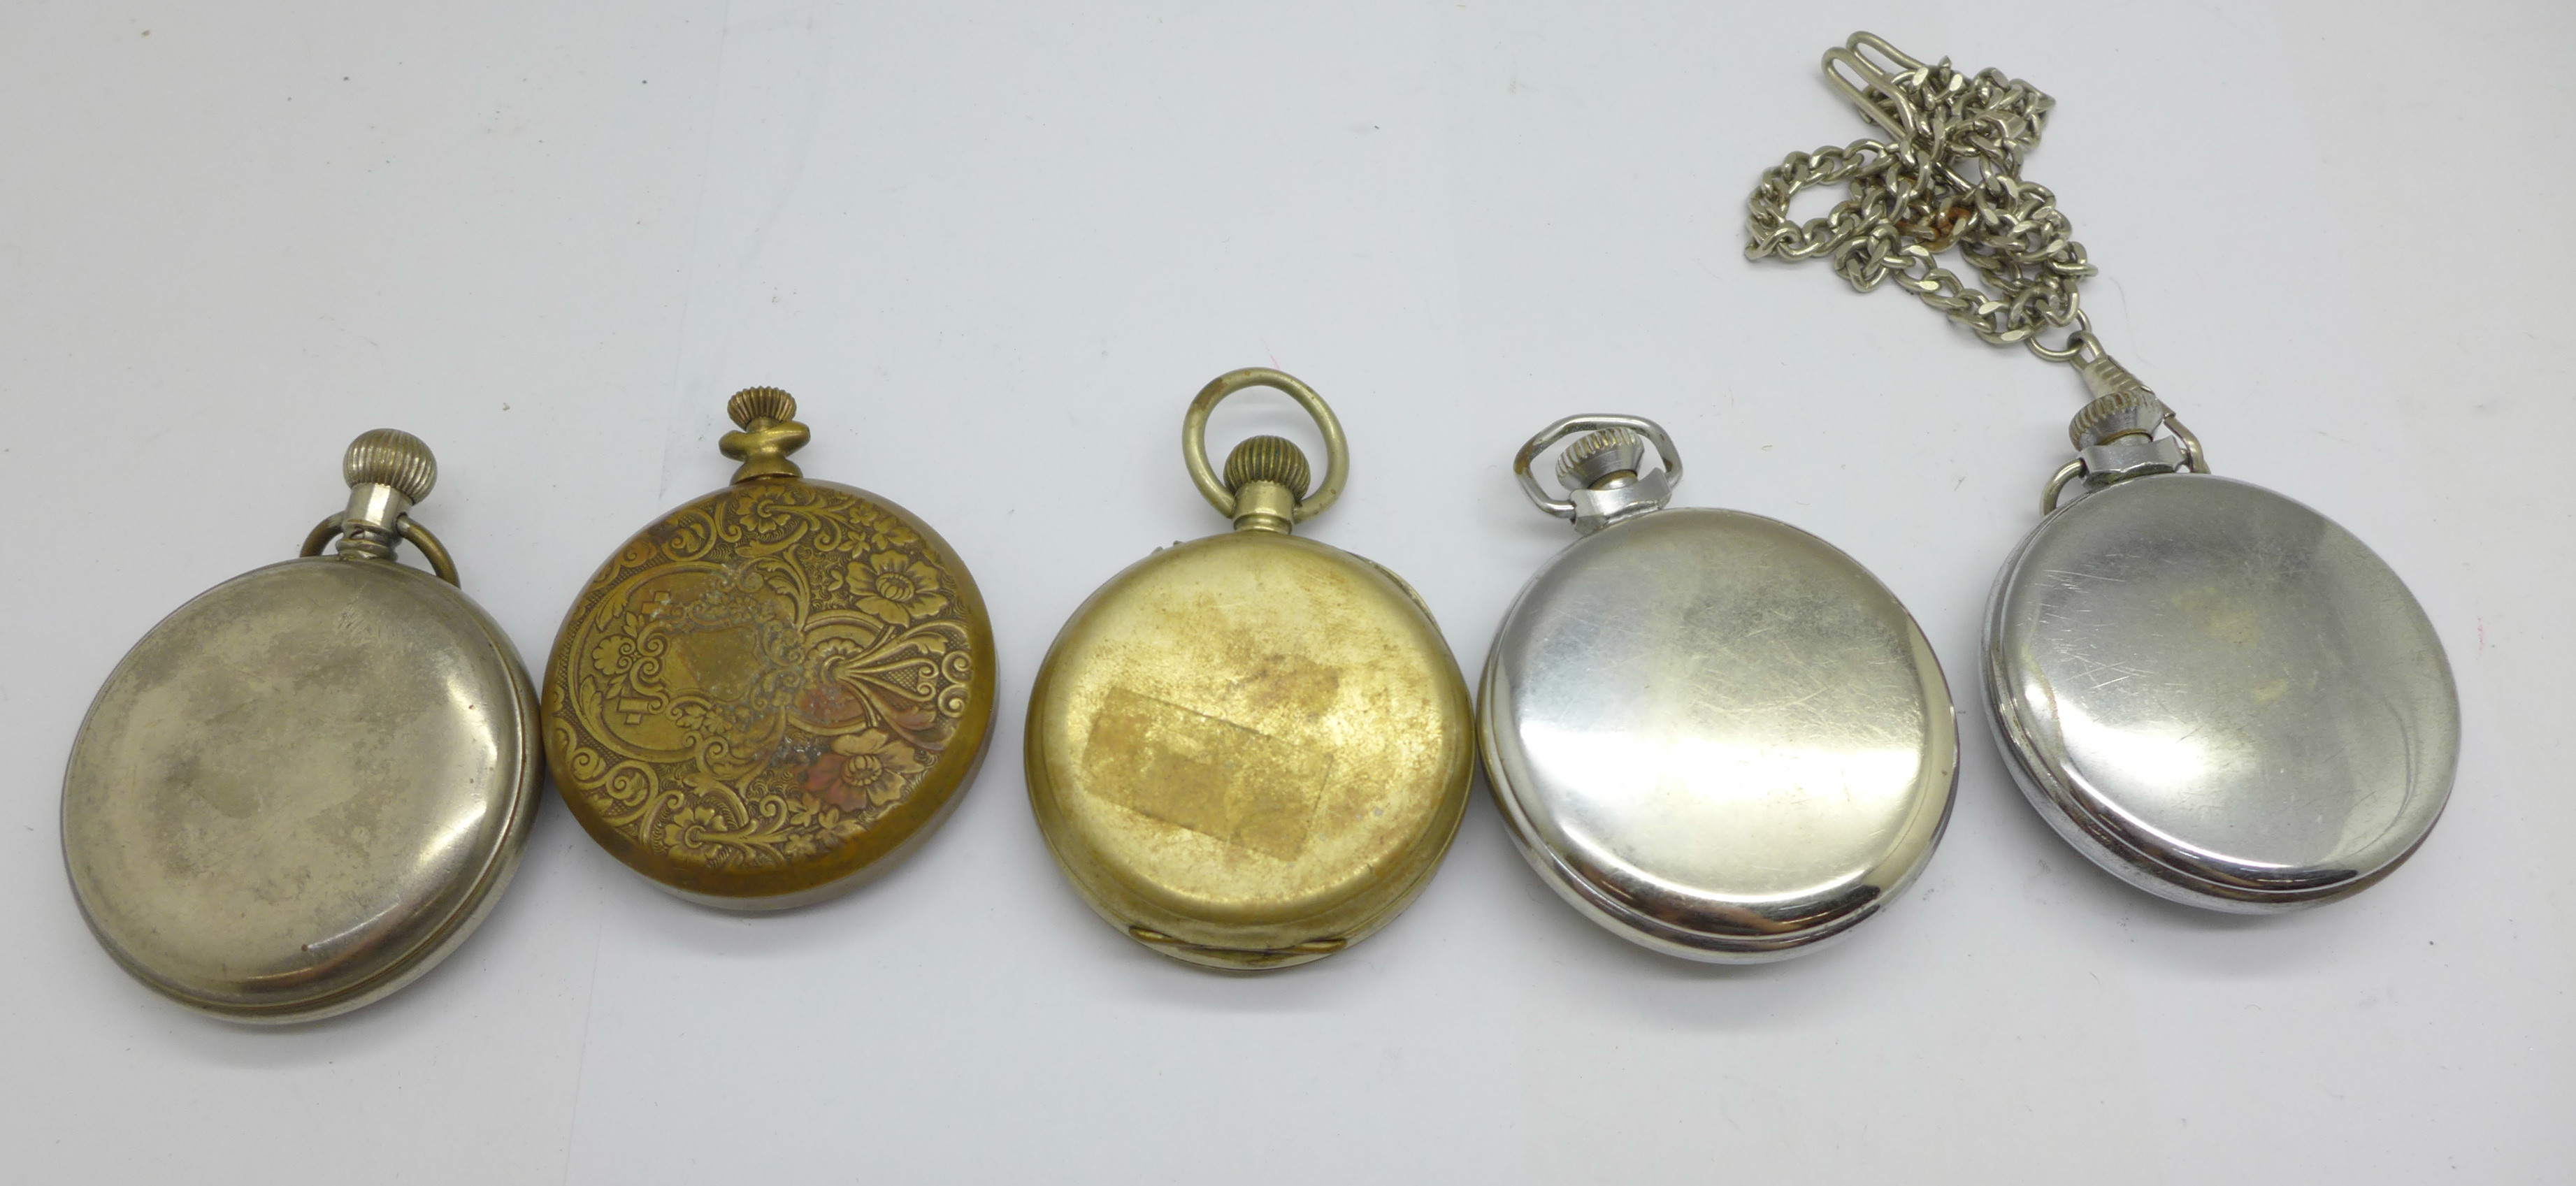 Five pocket watches - Image 4 of 4